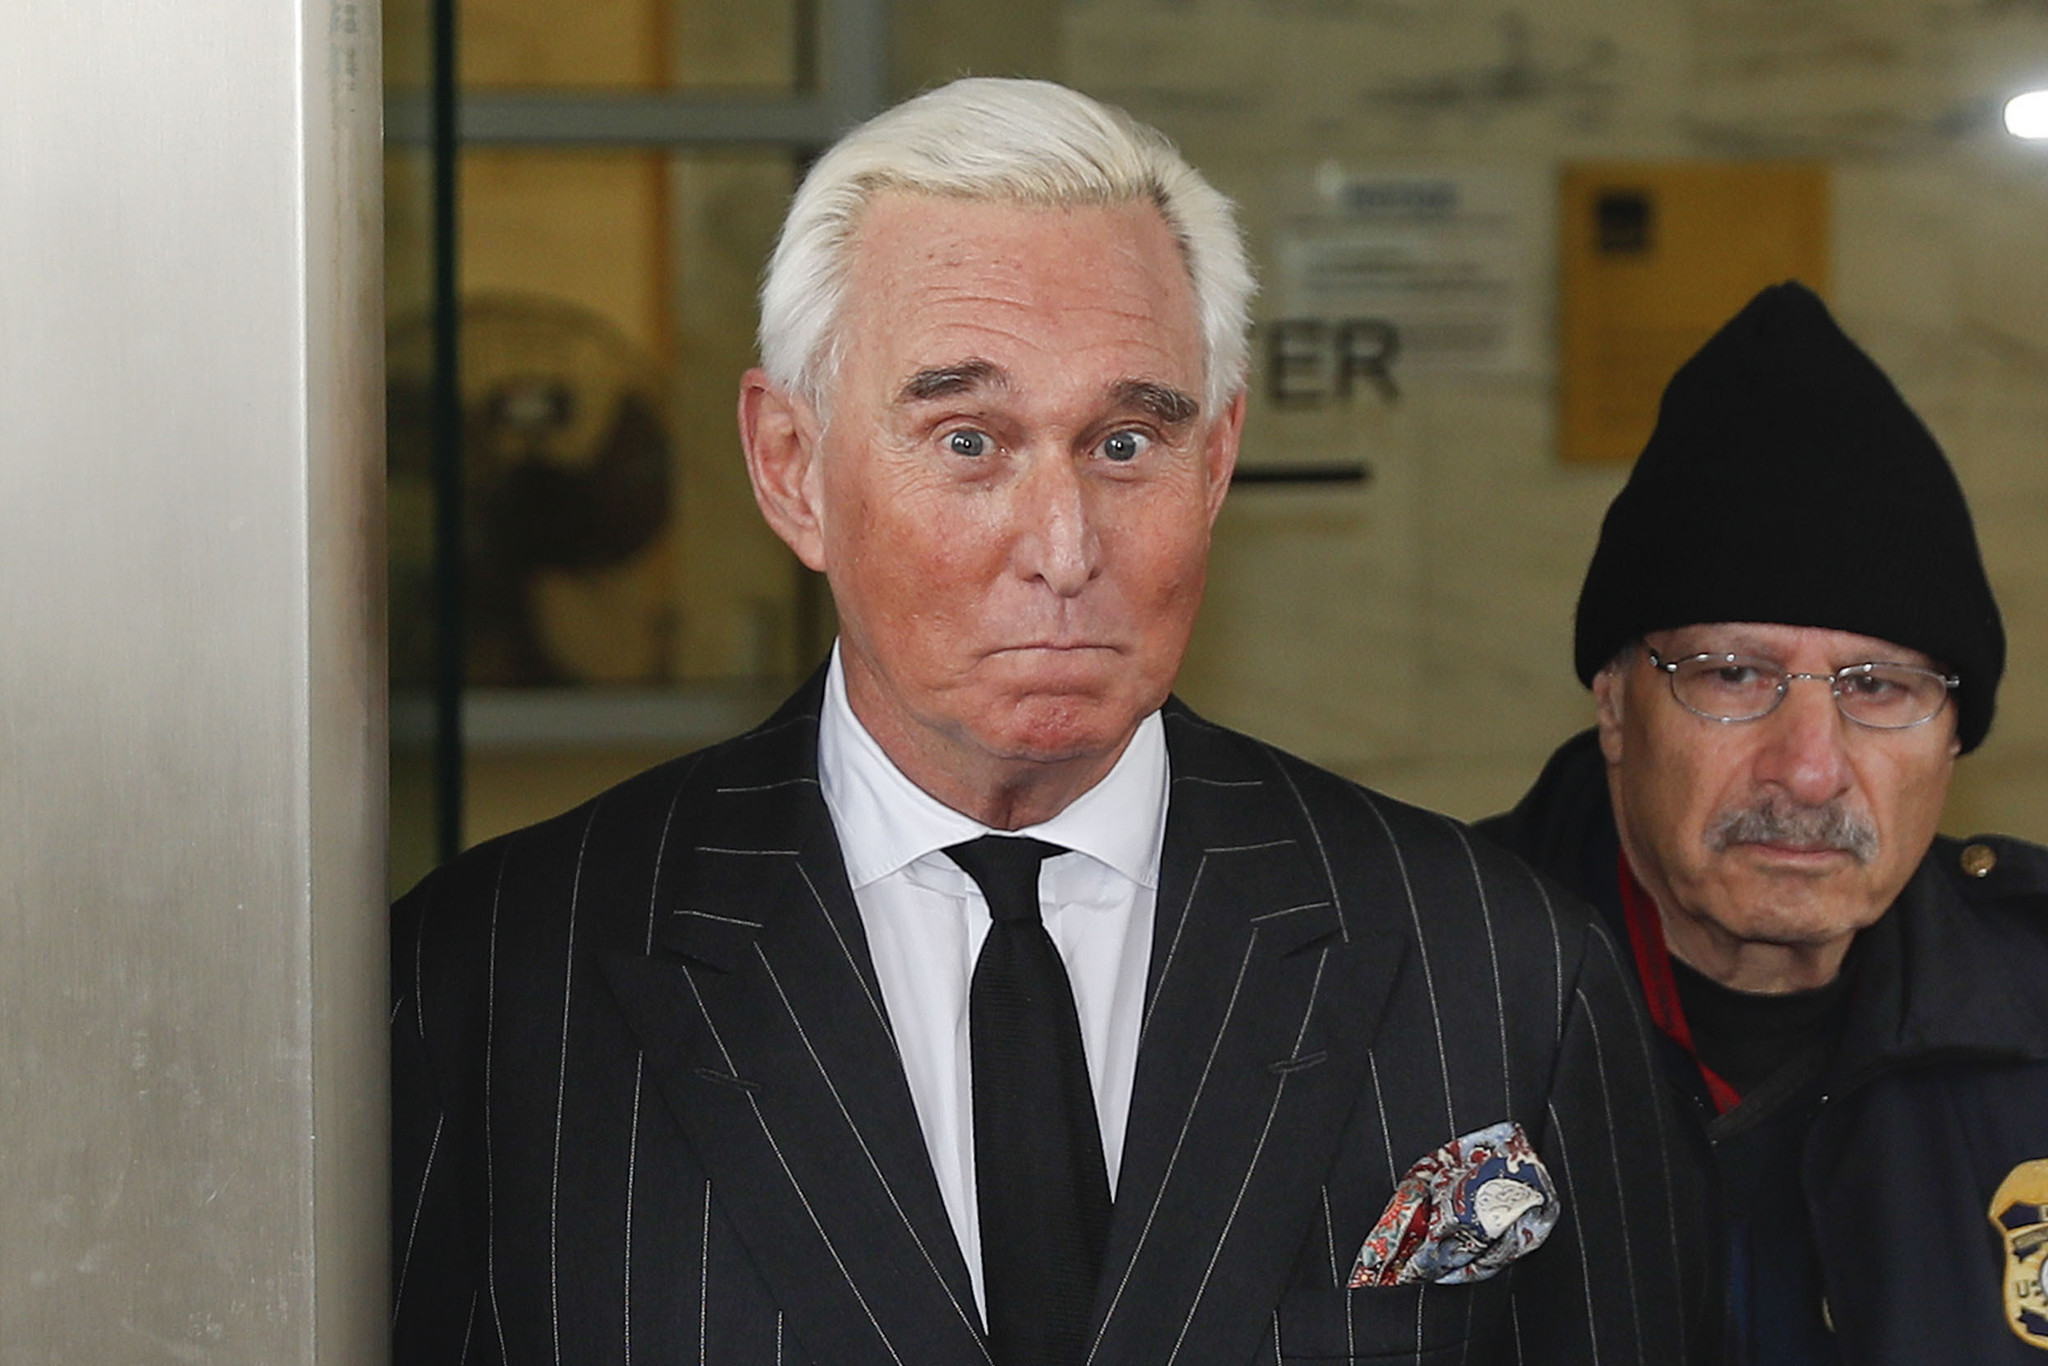 Judge orders Roger Stone to court over Instagram post portraying judge with what appeared to be crosshairs of a gun